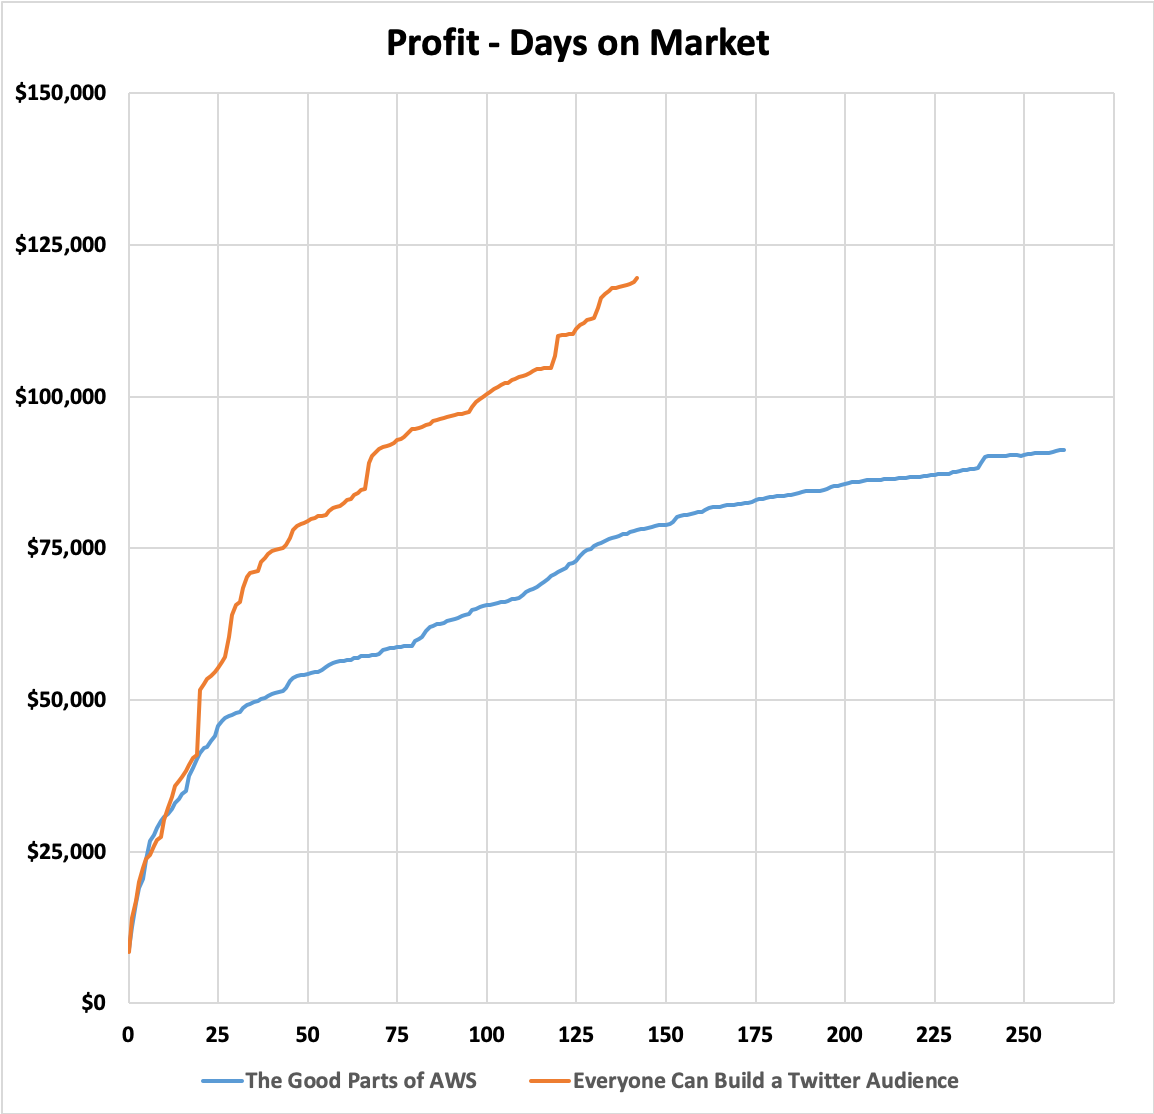 Profit - Days on Market